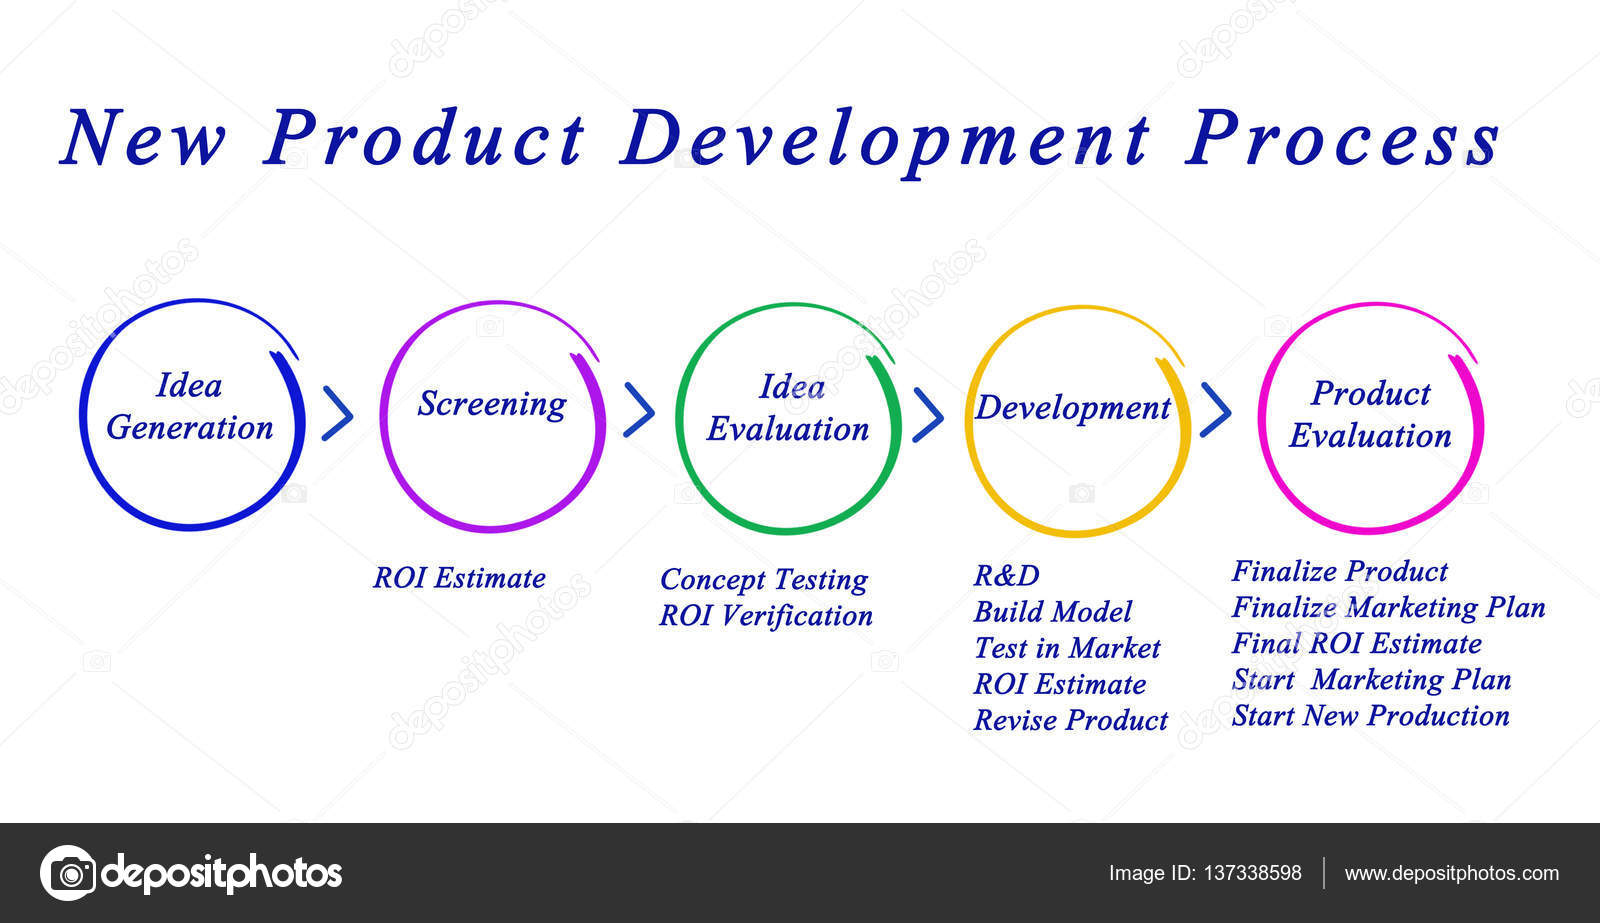 new product development The new product development cycle a model for npd: the new product development cycle the npd cycle is a circular arrangement of product development stages that result in the commercialization of new products.